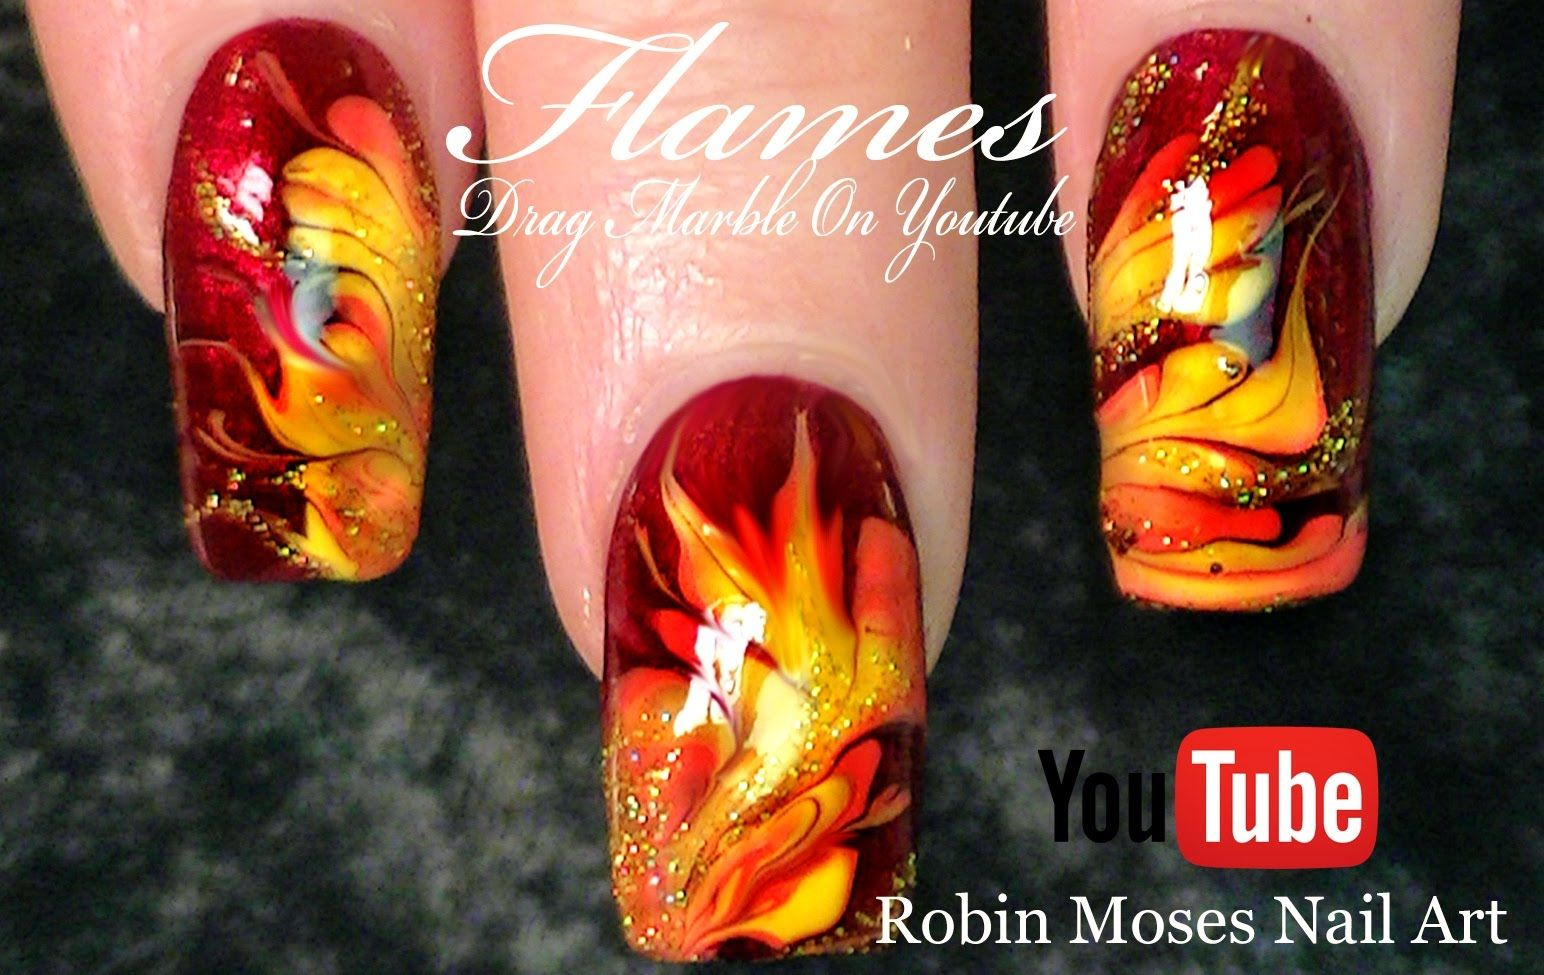 No Water Needed - Fall Flames DIY Drag Marble nail art Tutorial ...